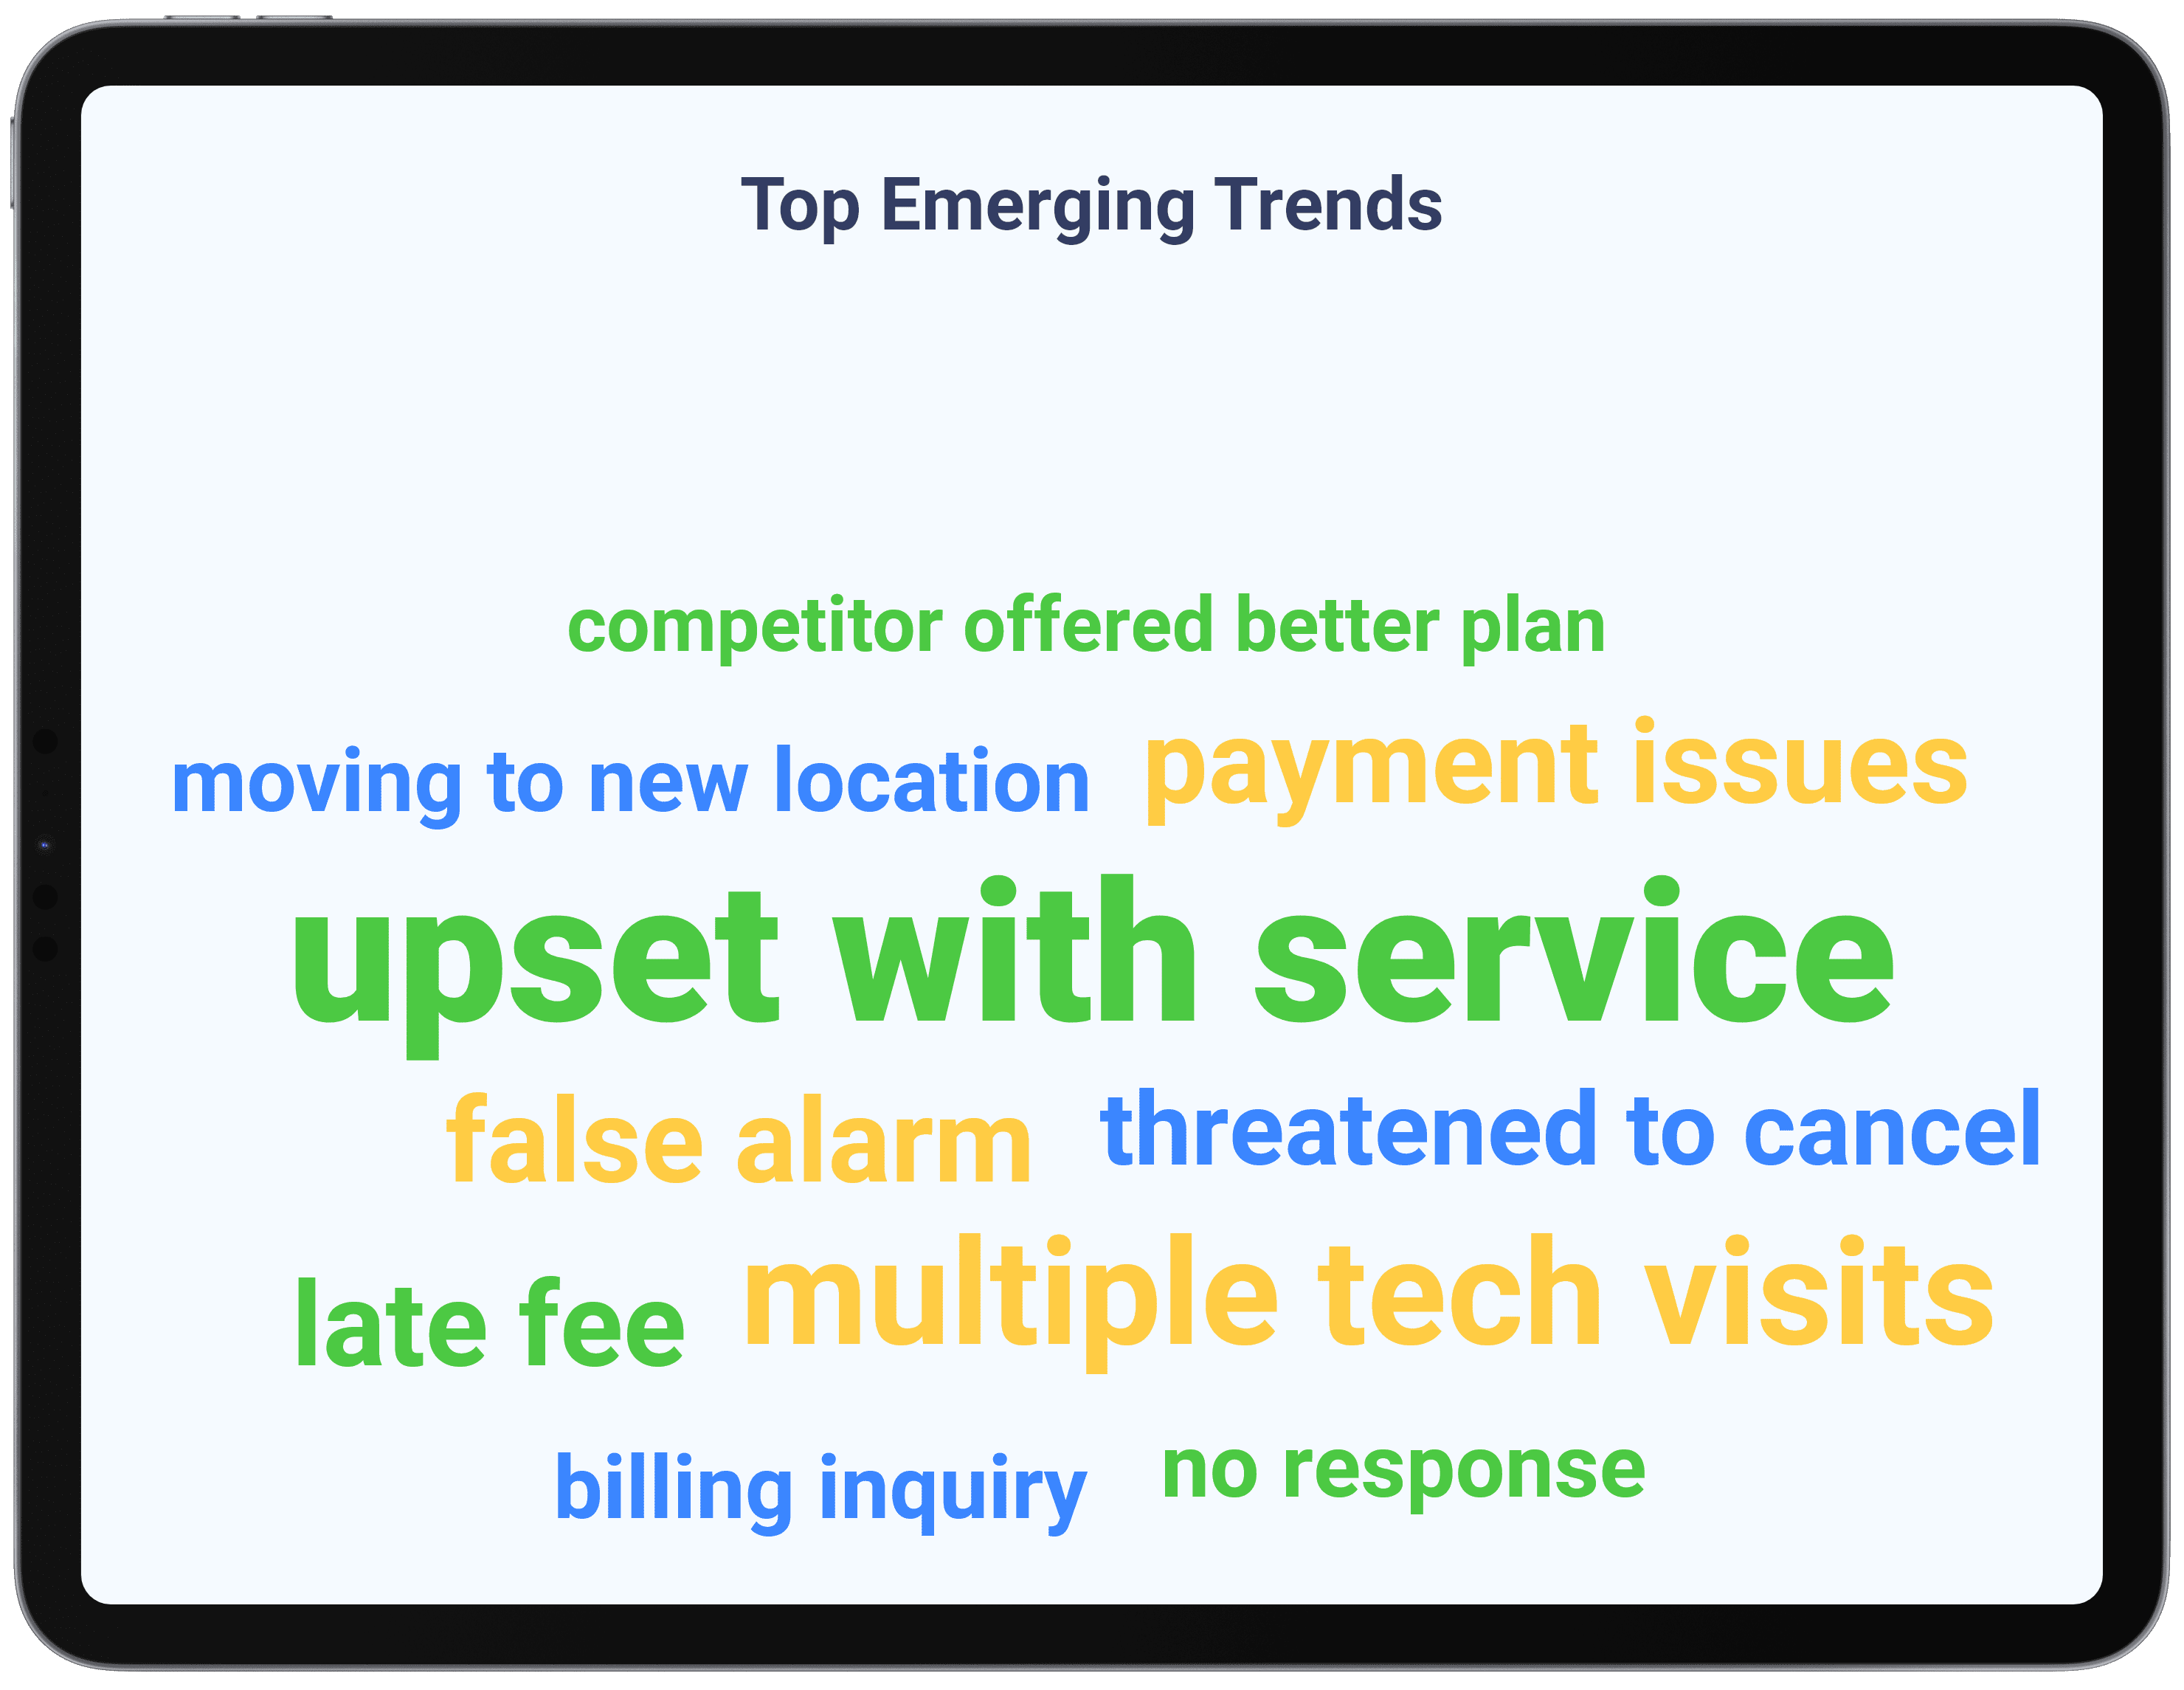 Home Automation & Security - Identify Trending Topics